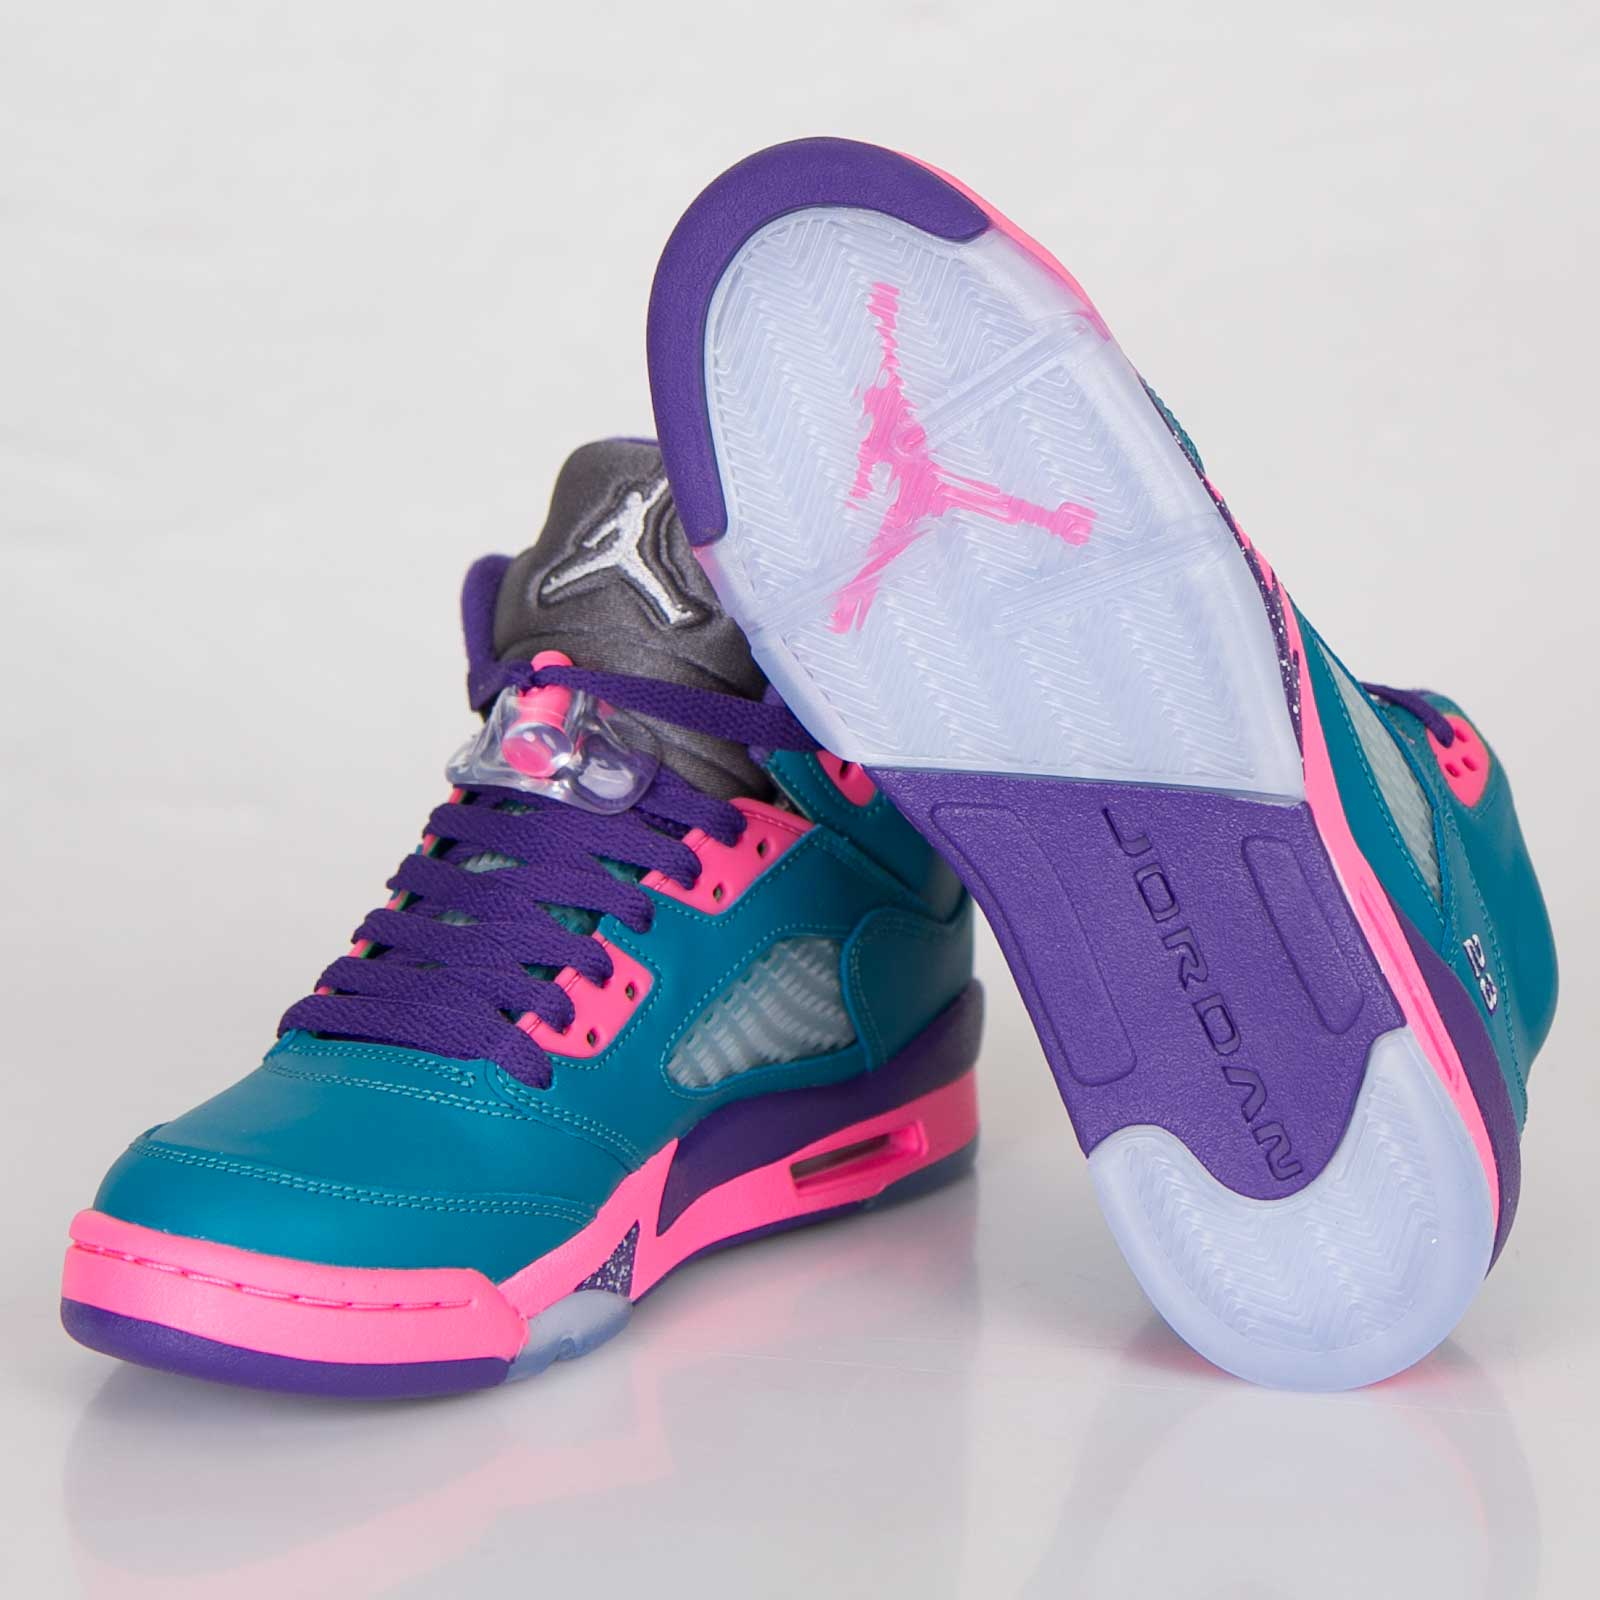 finest selection dfdae dff86 Jordan Brand Girls Air Jordan 5 Retro (GS) - 440892-307 - Sneakersnstuff    sneakers   streetwear online since 1999